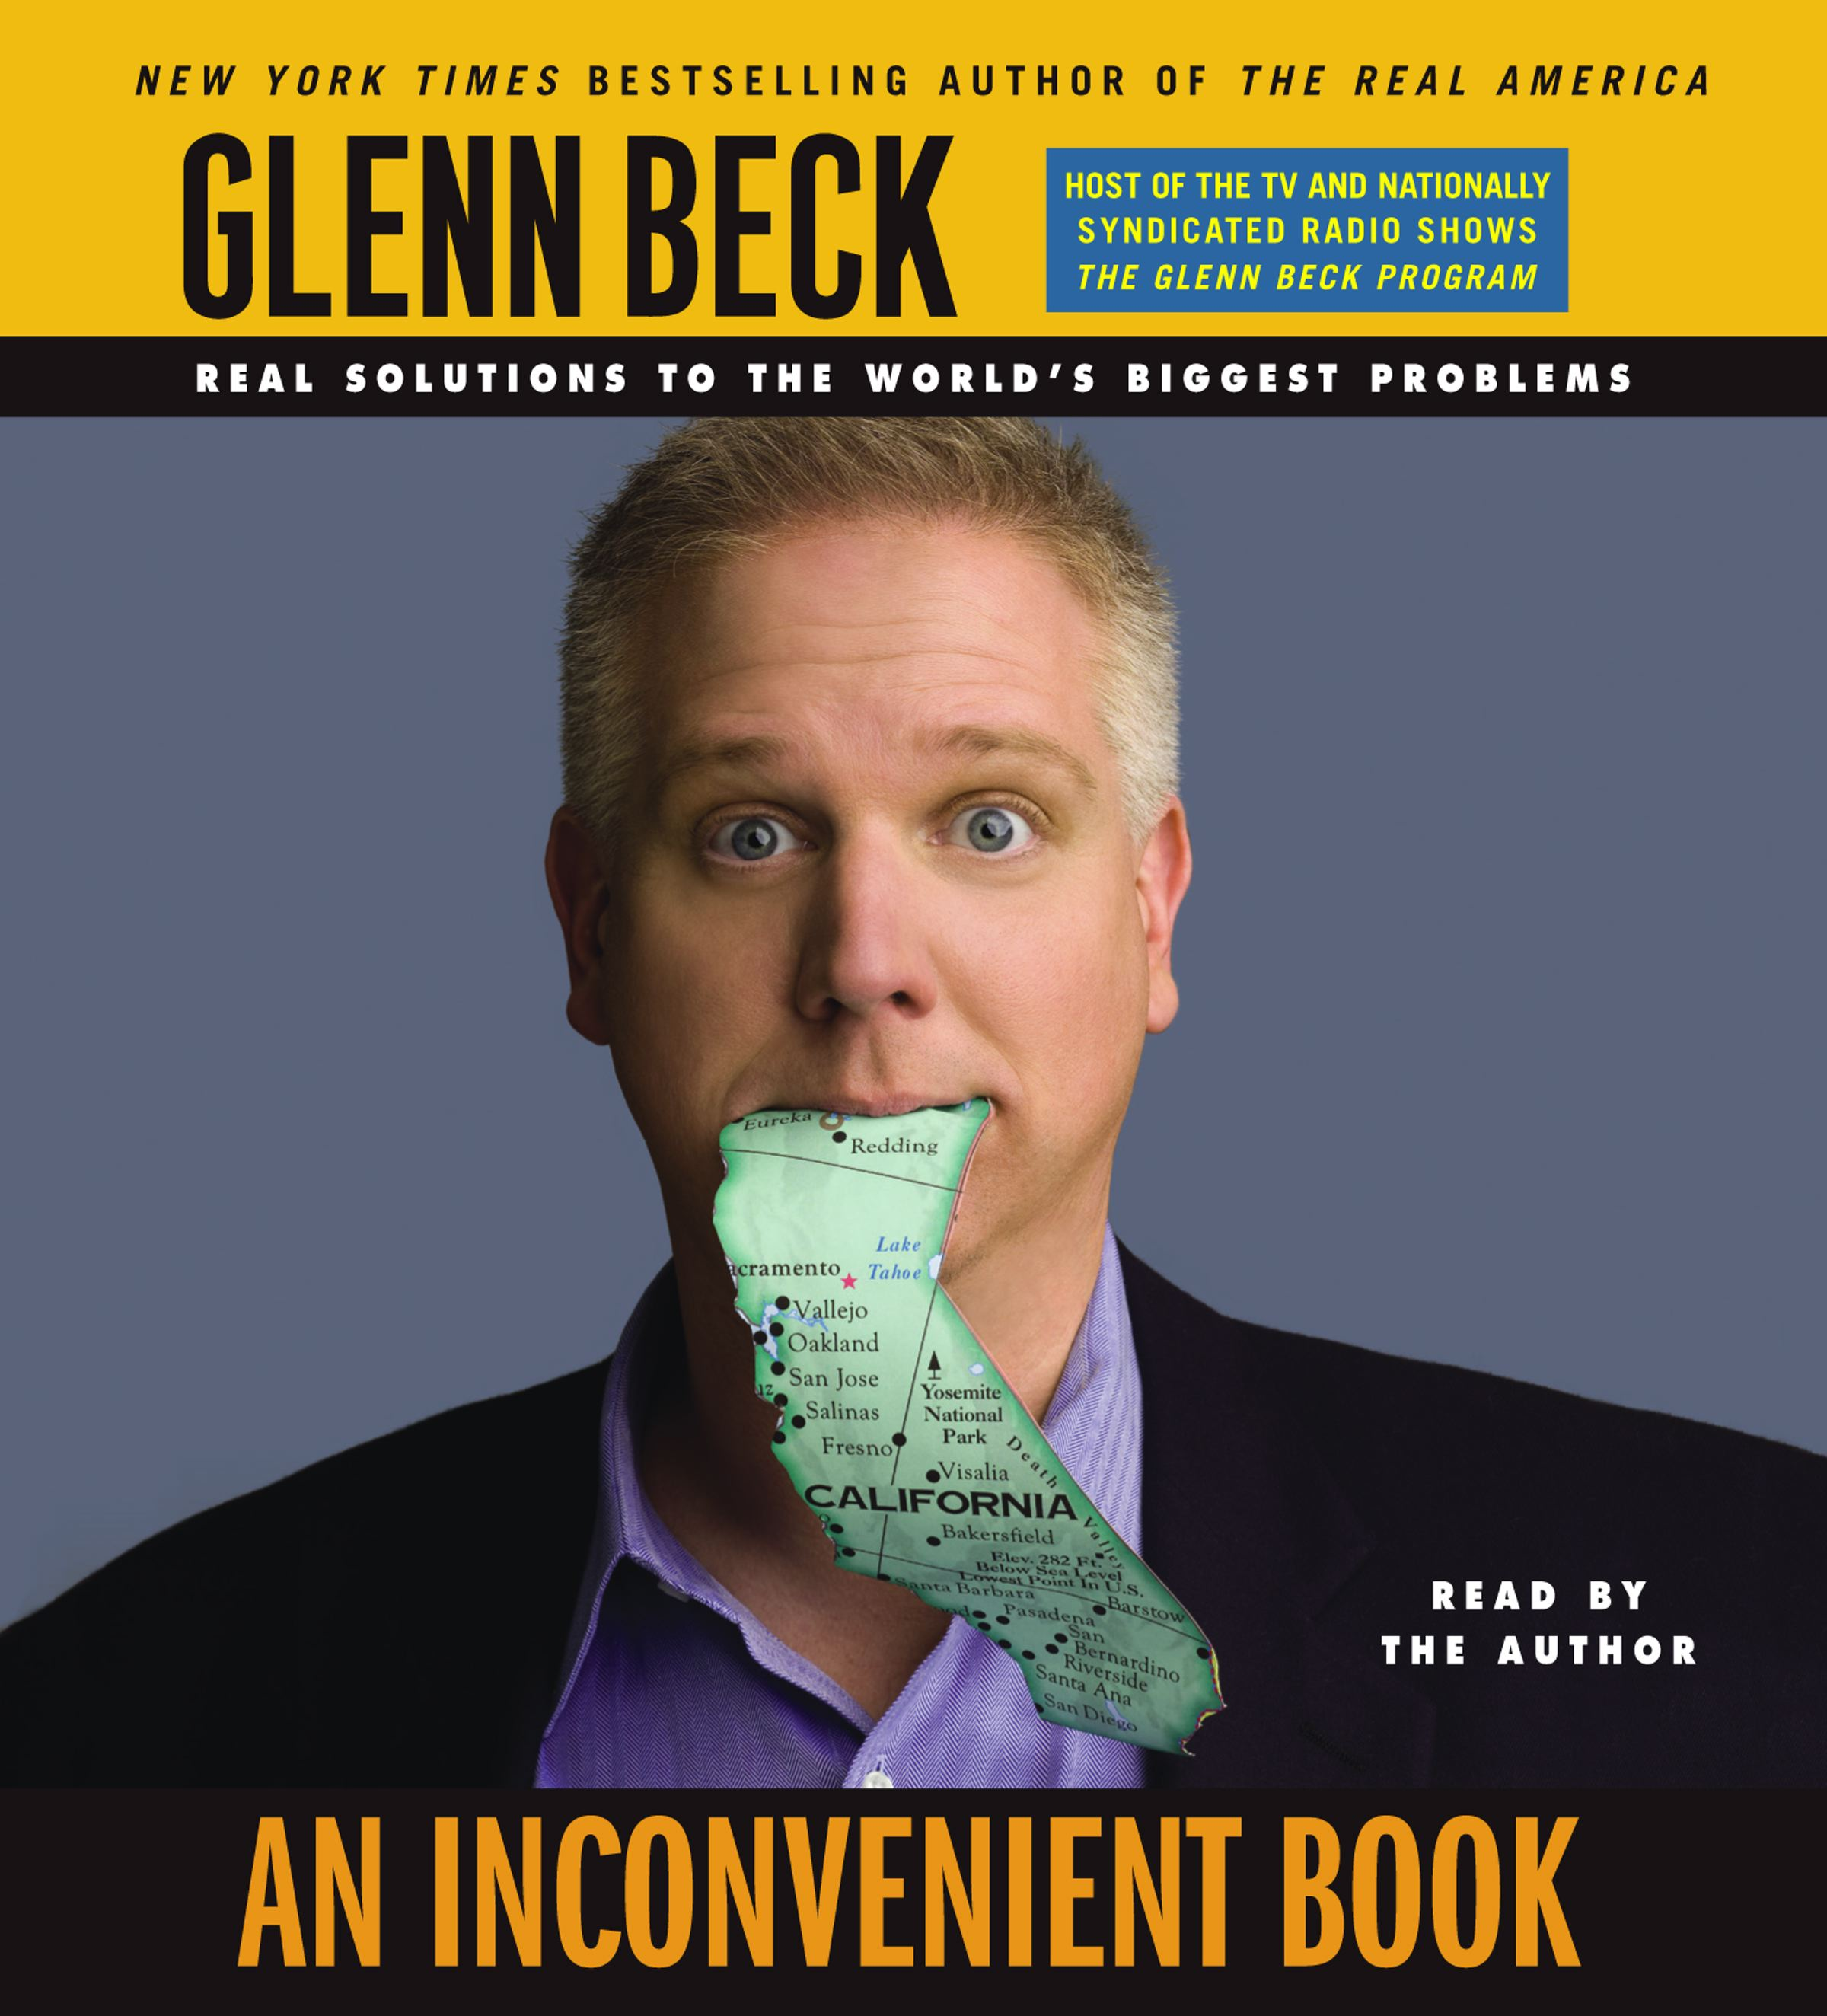 Inconvenient-book-9780743569545_hr